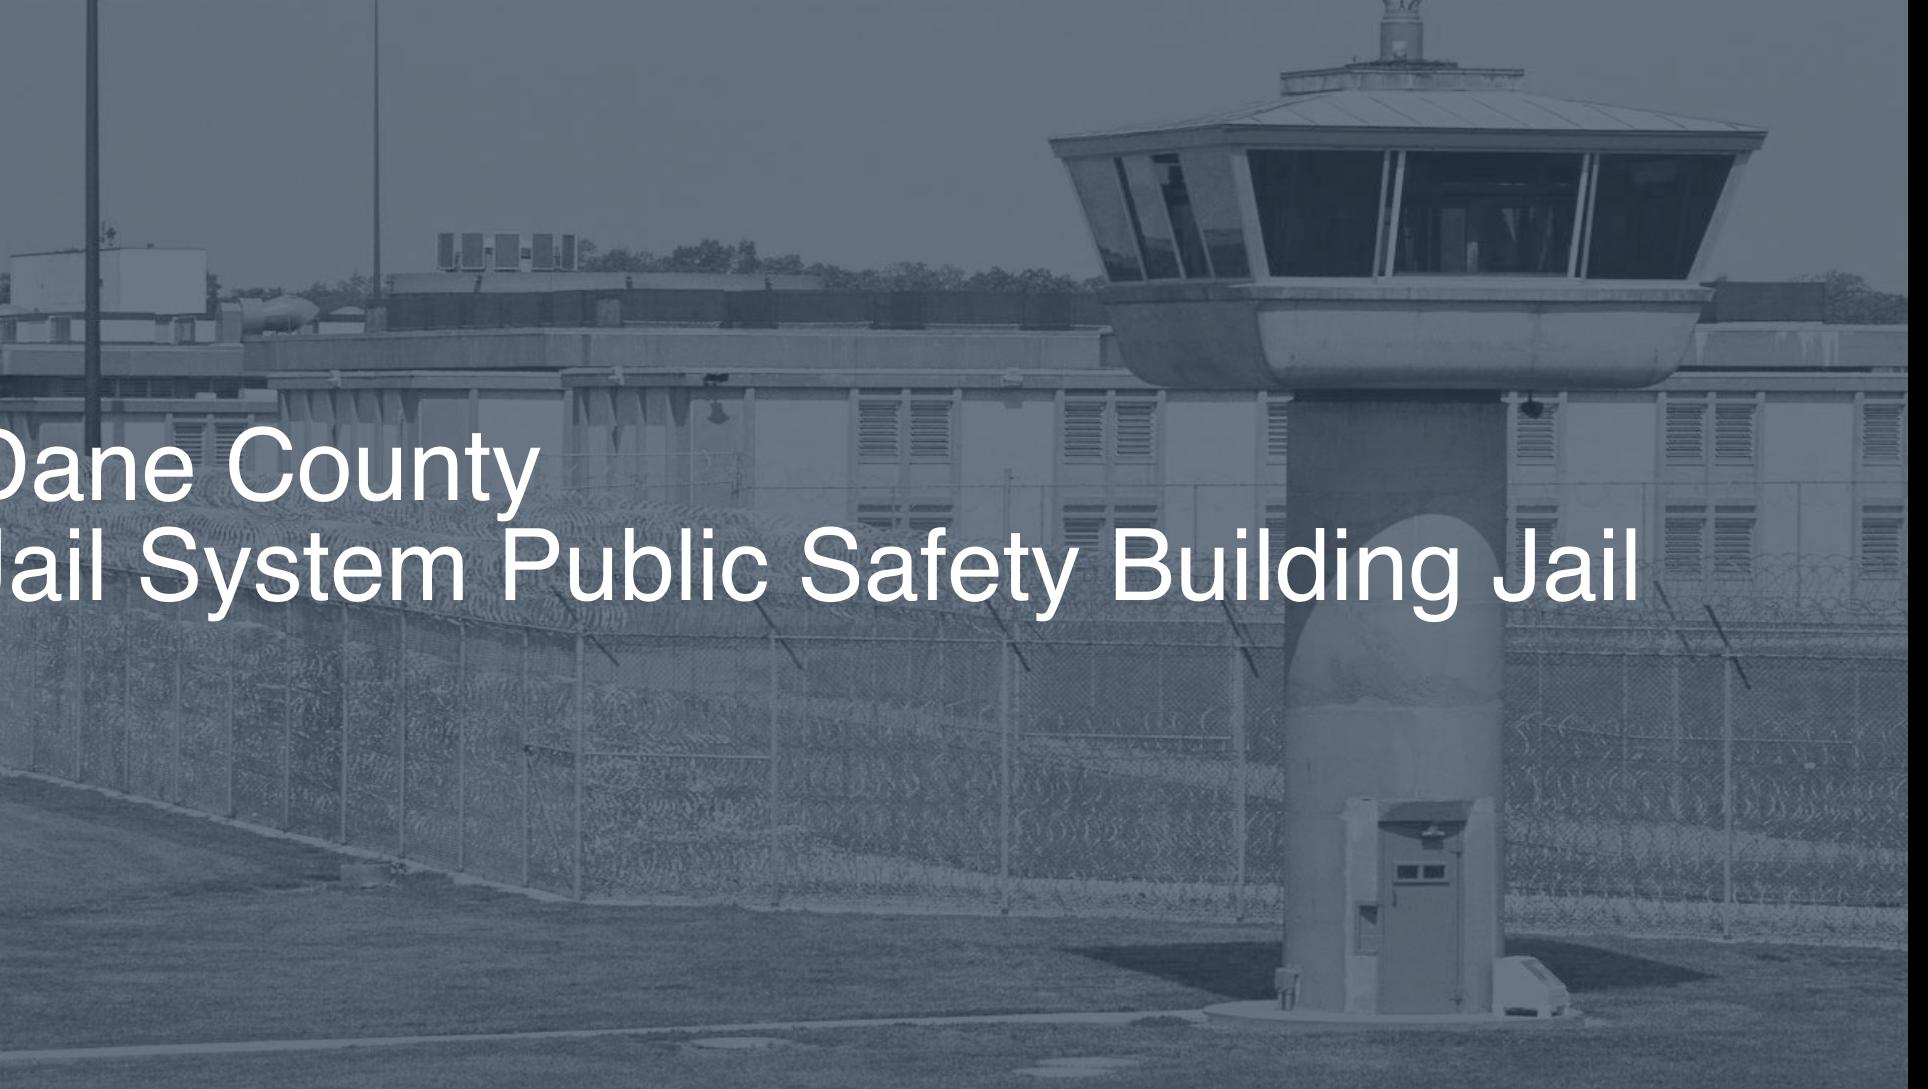 Dane County Jail System - Public Safety Building Jail correctional facility picture